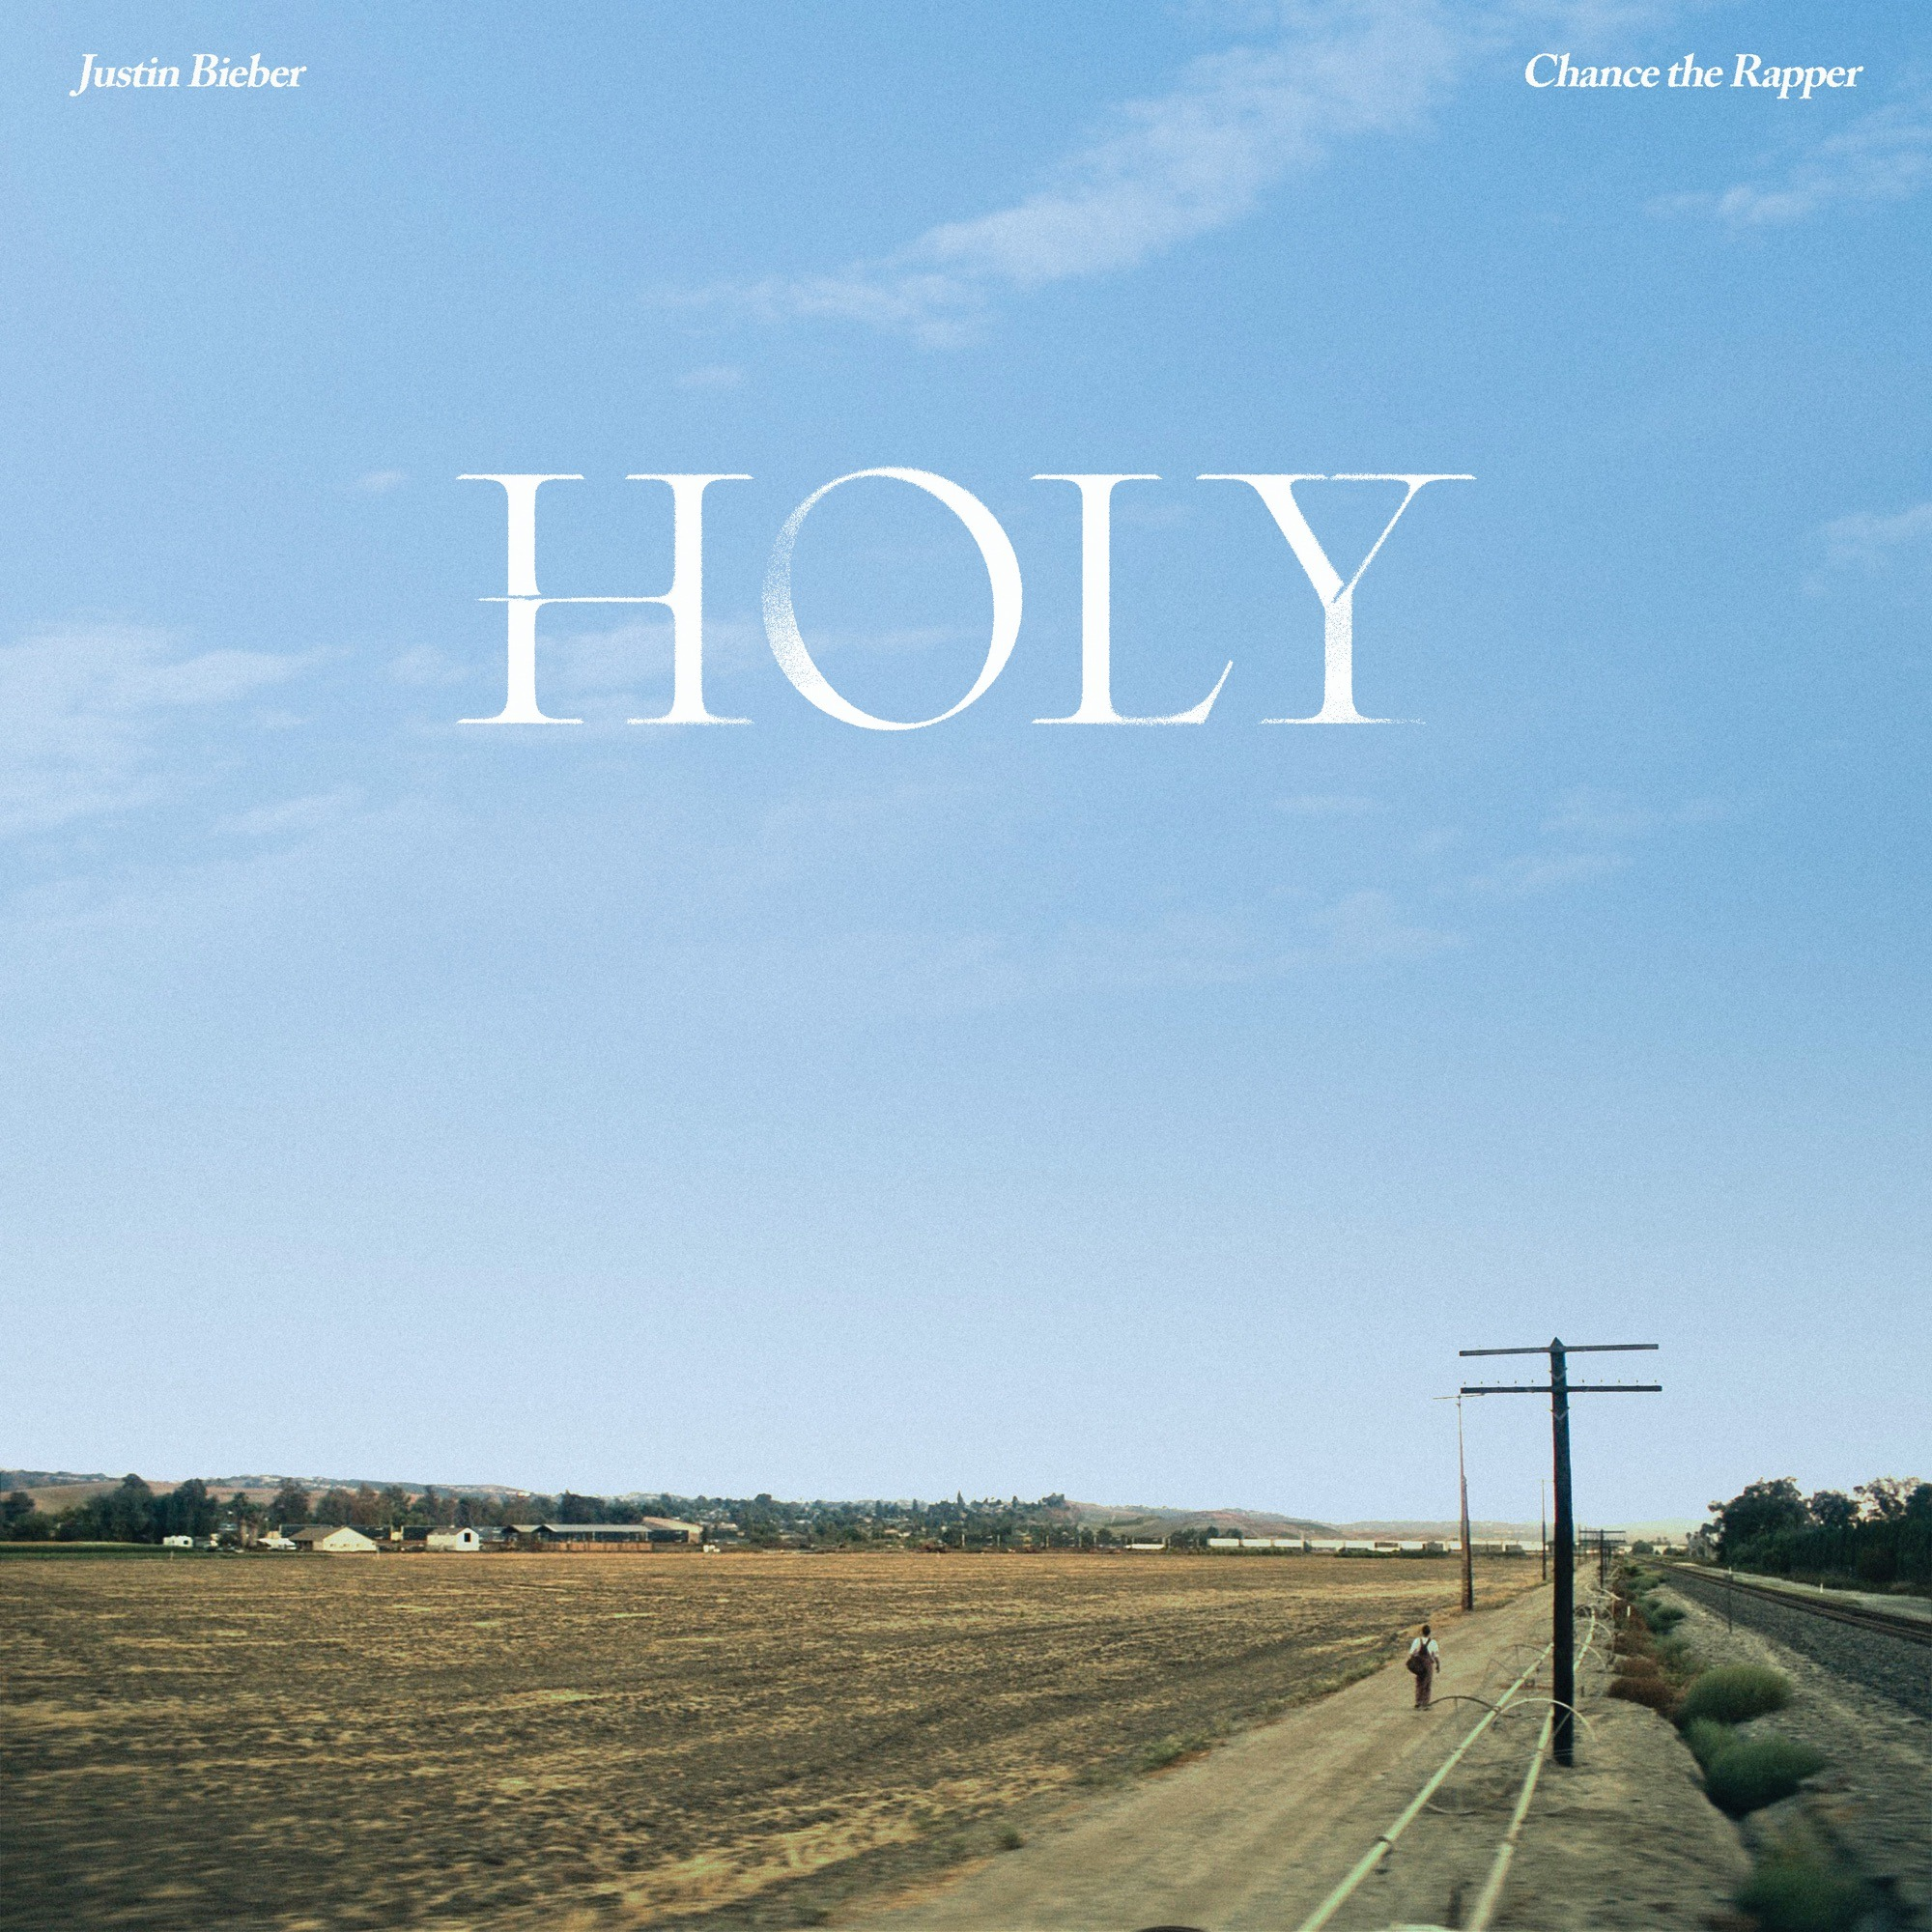 Justin Bieber feat. Chance the Rapper – Holy